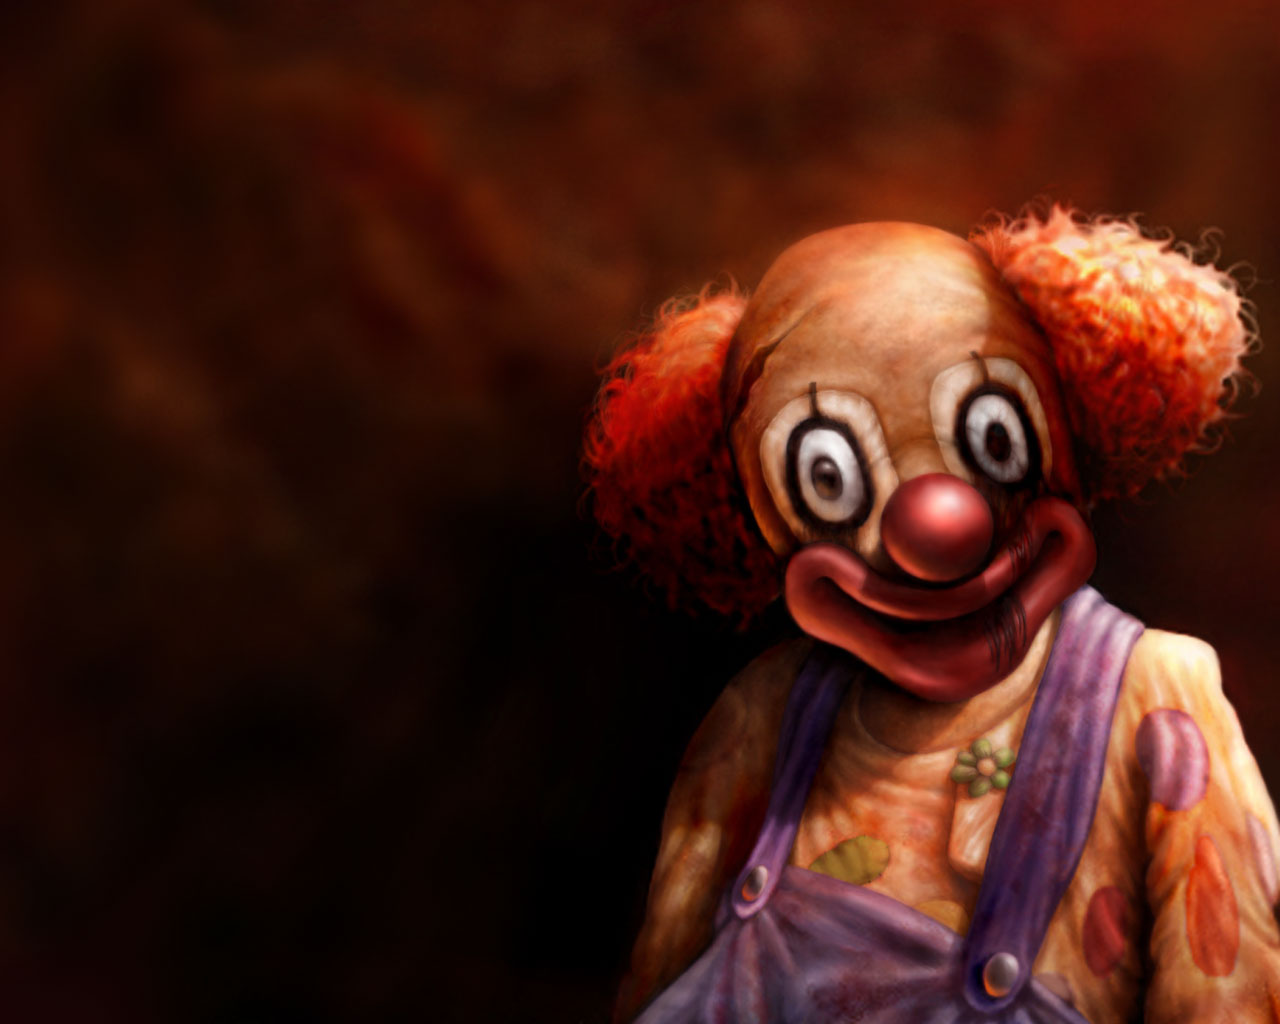 Evil Clowns Wallpaper Hd Mashababko clown wallpapers 1280x1024